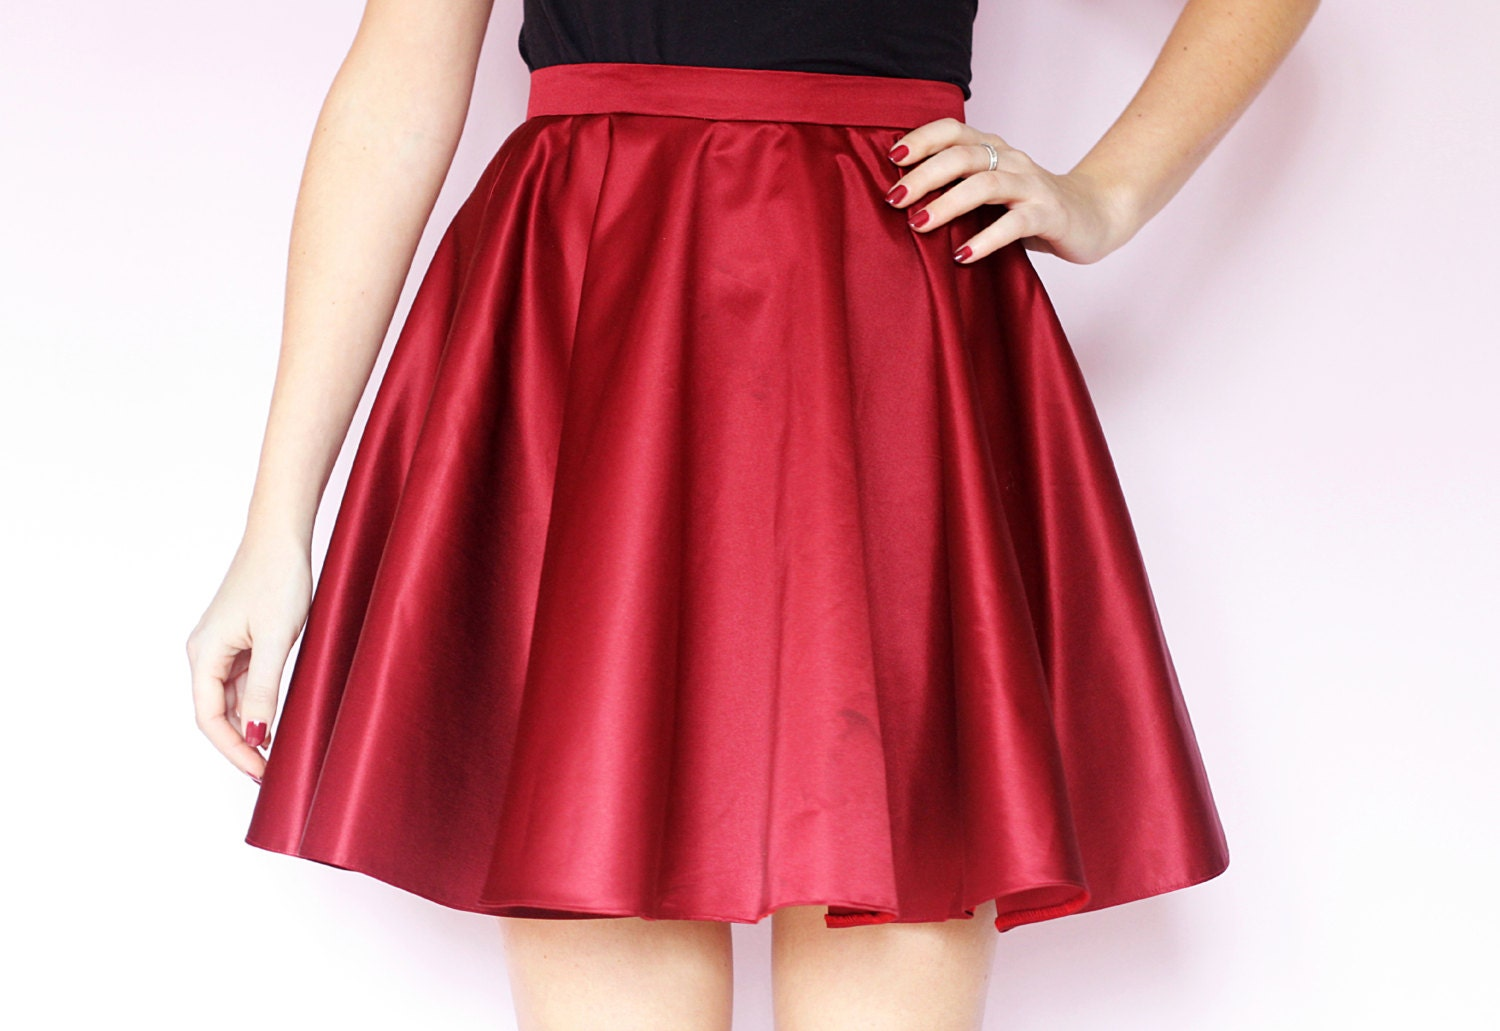 The awesome thing about circle skirts is that once you get the idea, you can use the same premise to make a variety of different styles all based on a simple circle skirt. This tutorial is for a classic circle skirt (think 50's style poodle skirt).